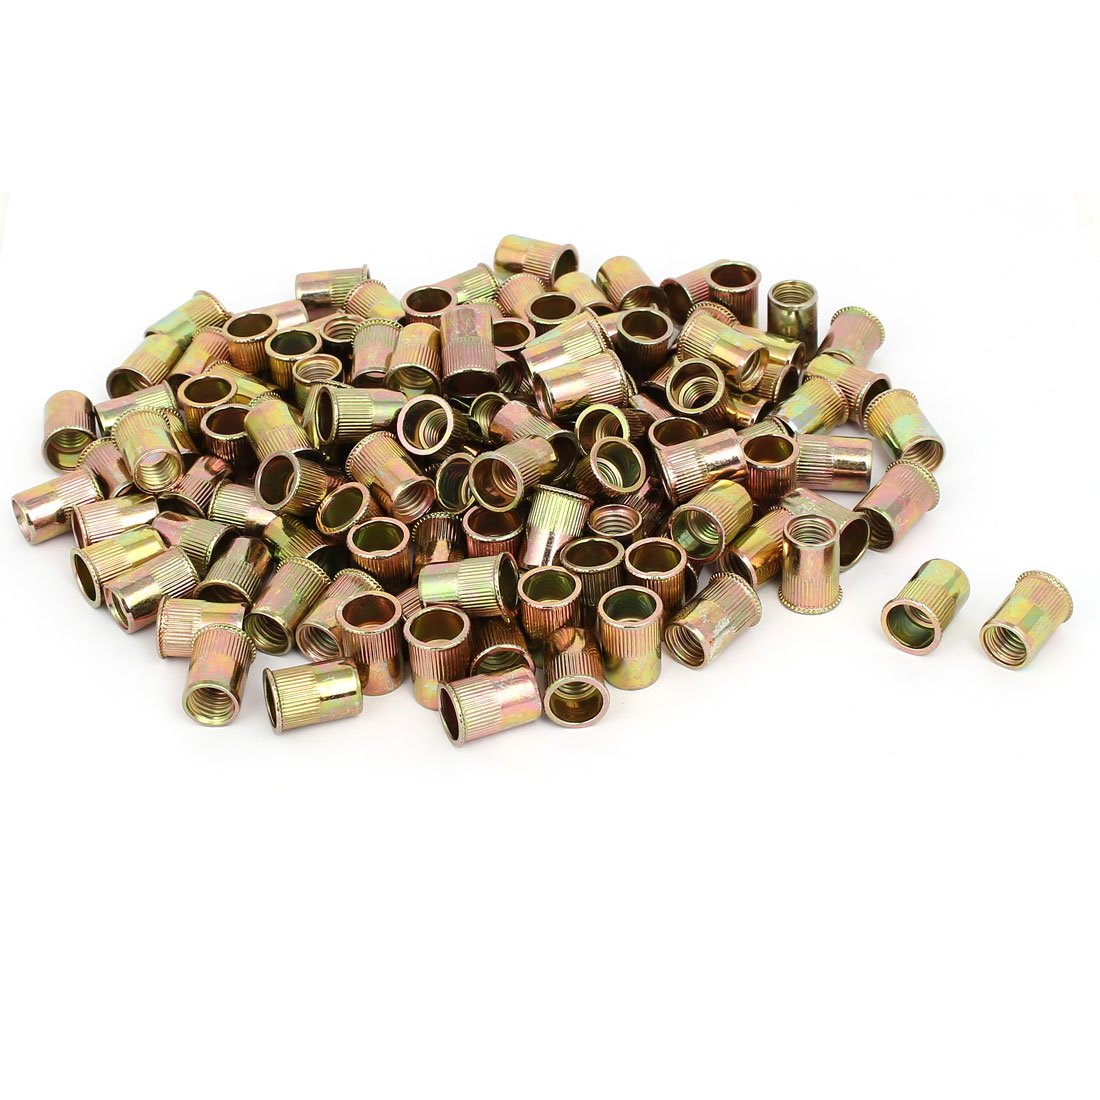 uxcell M10x19mm Reduced Head Straight Knurled Rivet Nut Insert Bronze Tone 130pcs